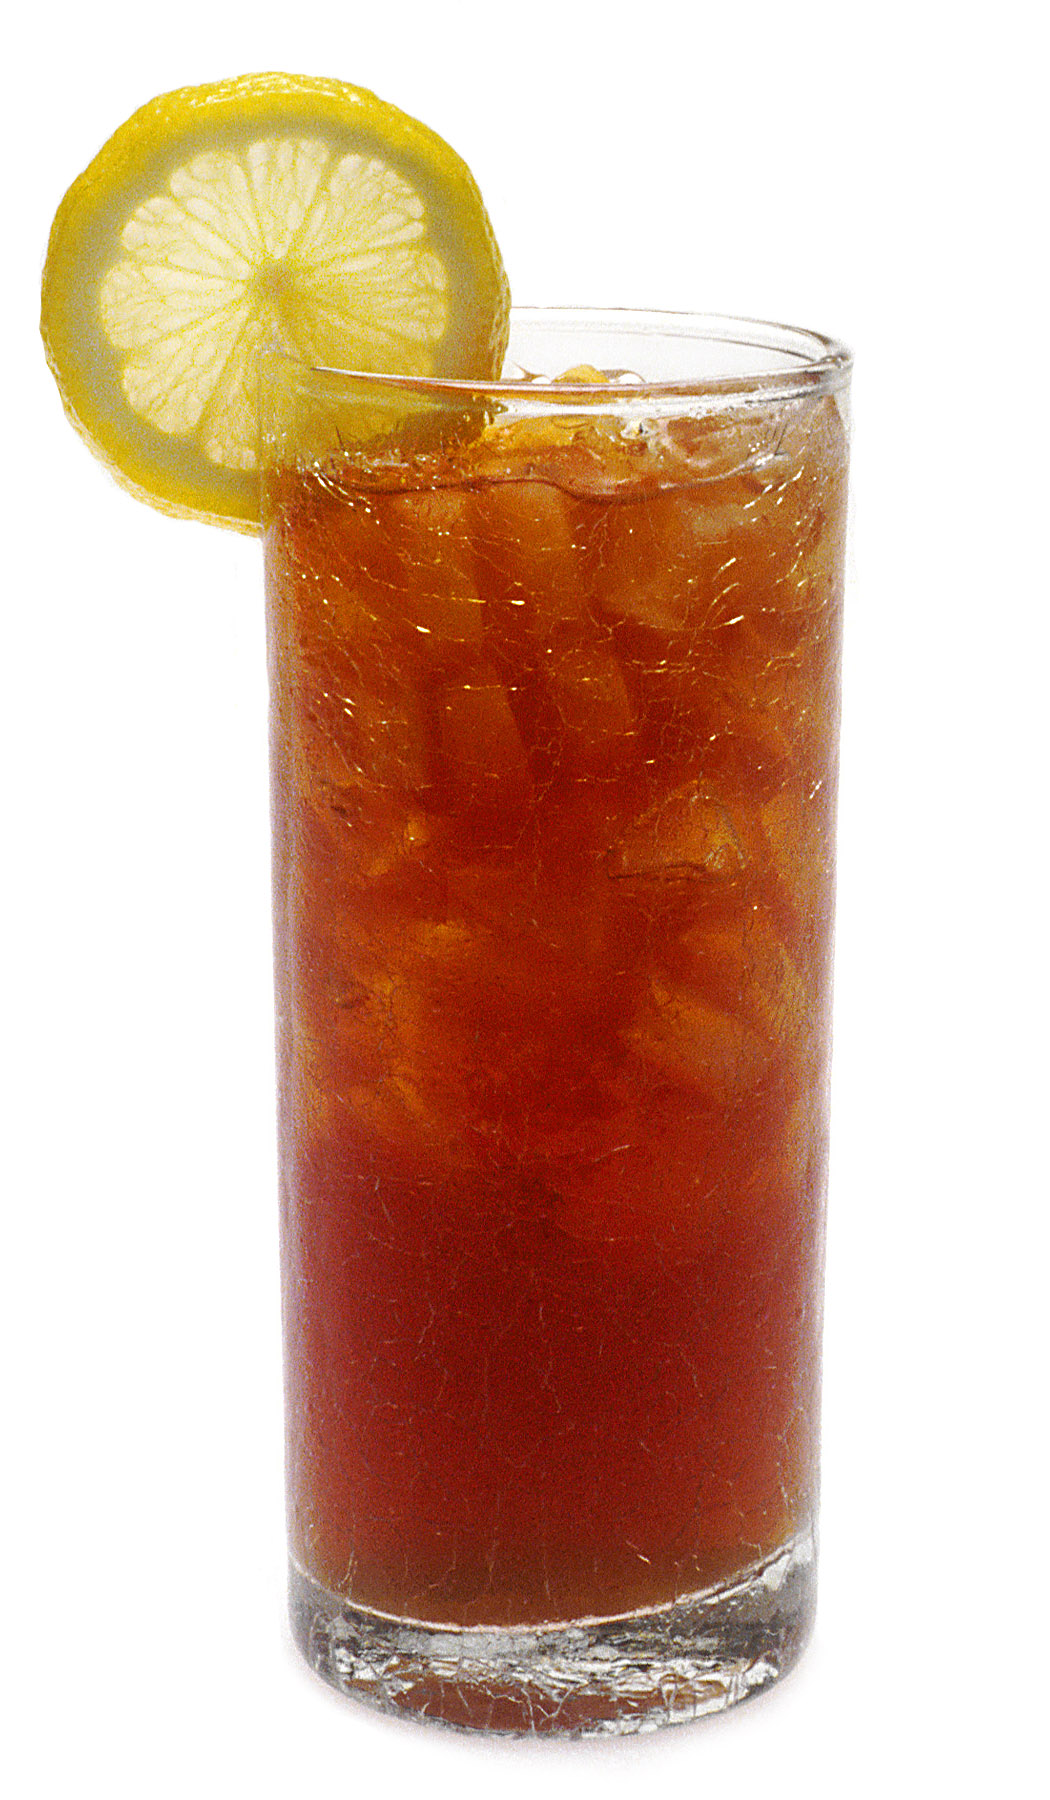 https://upload.wikimedia.org/wikipedia/commons/e/e1/NCI_iced_tea.jpg